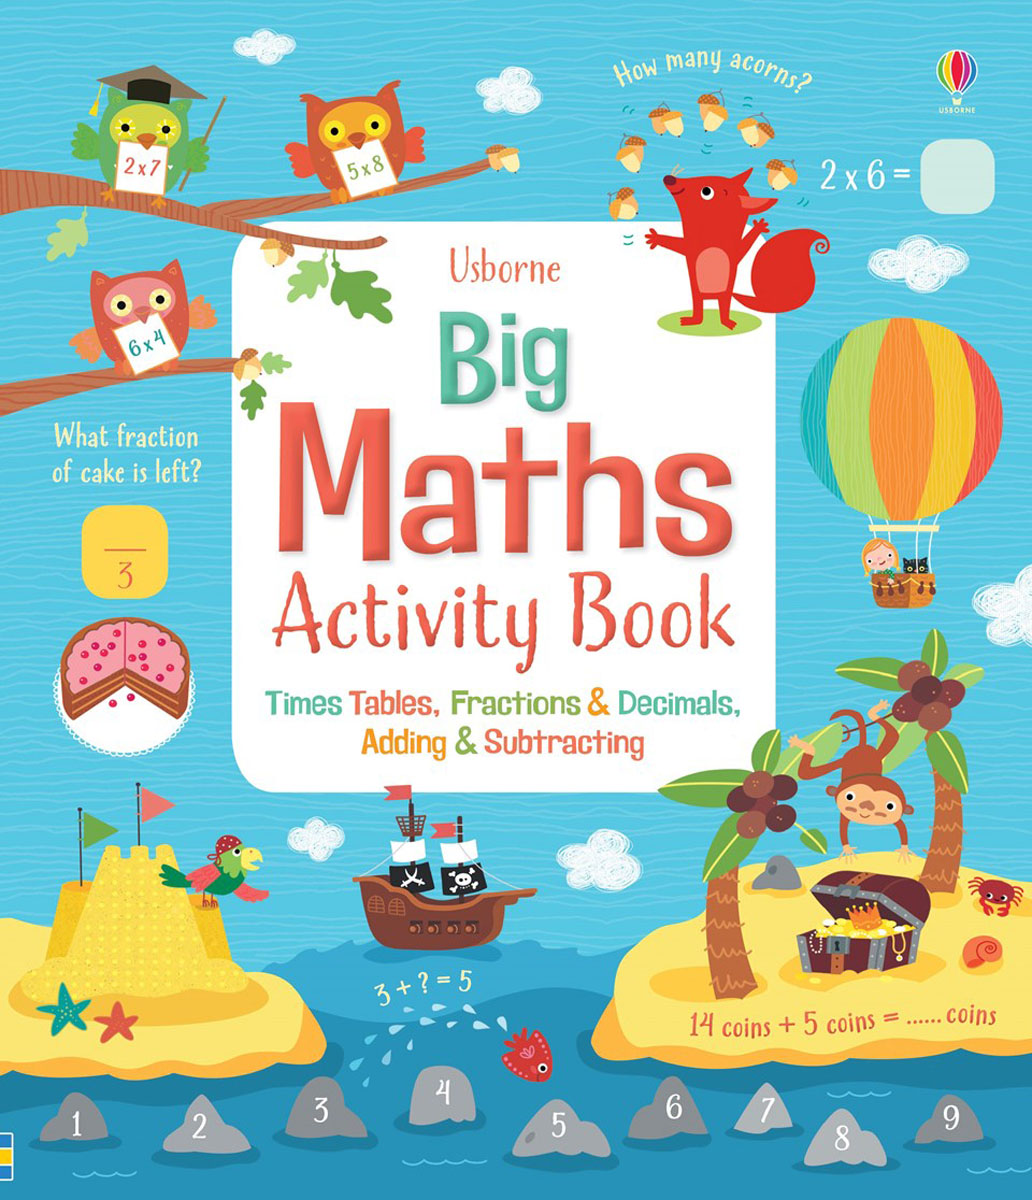 Big maths activity book mastering english prepositions